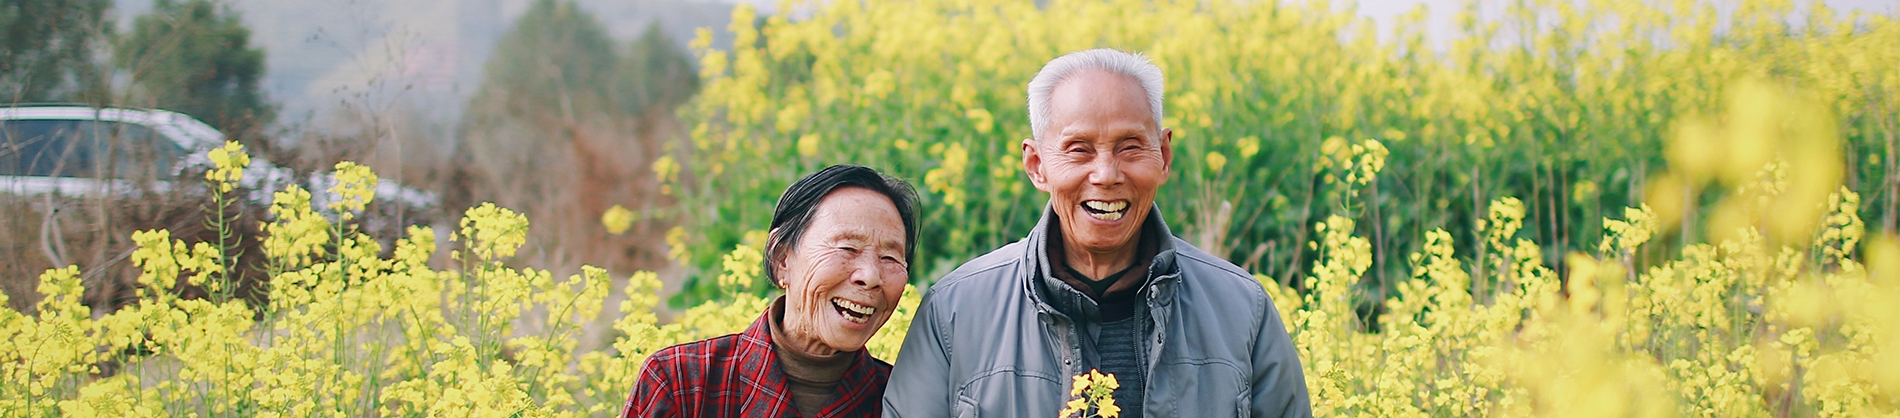 Two elderly people walking through a field of flowers